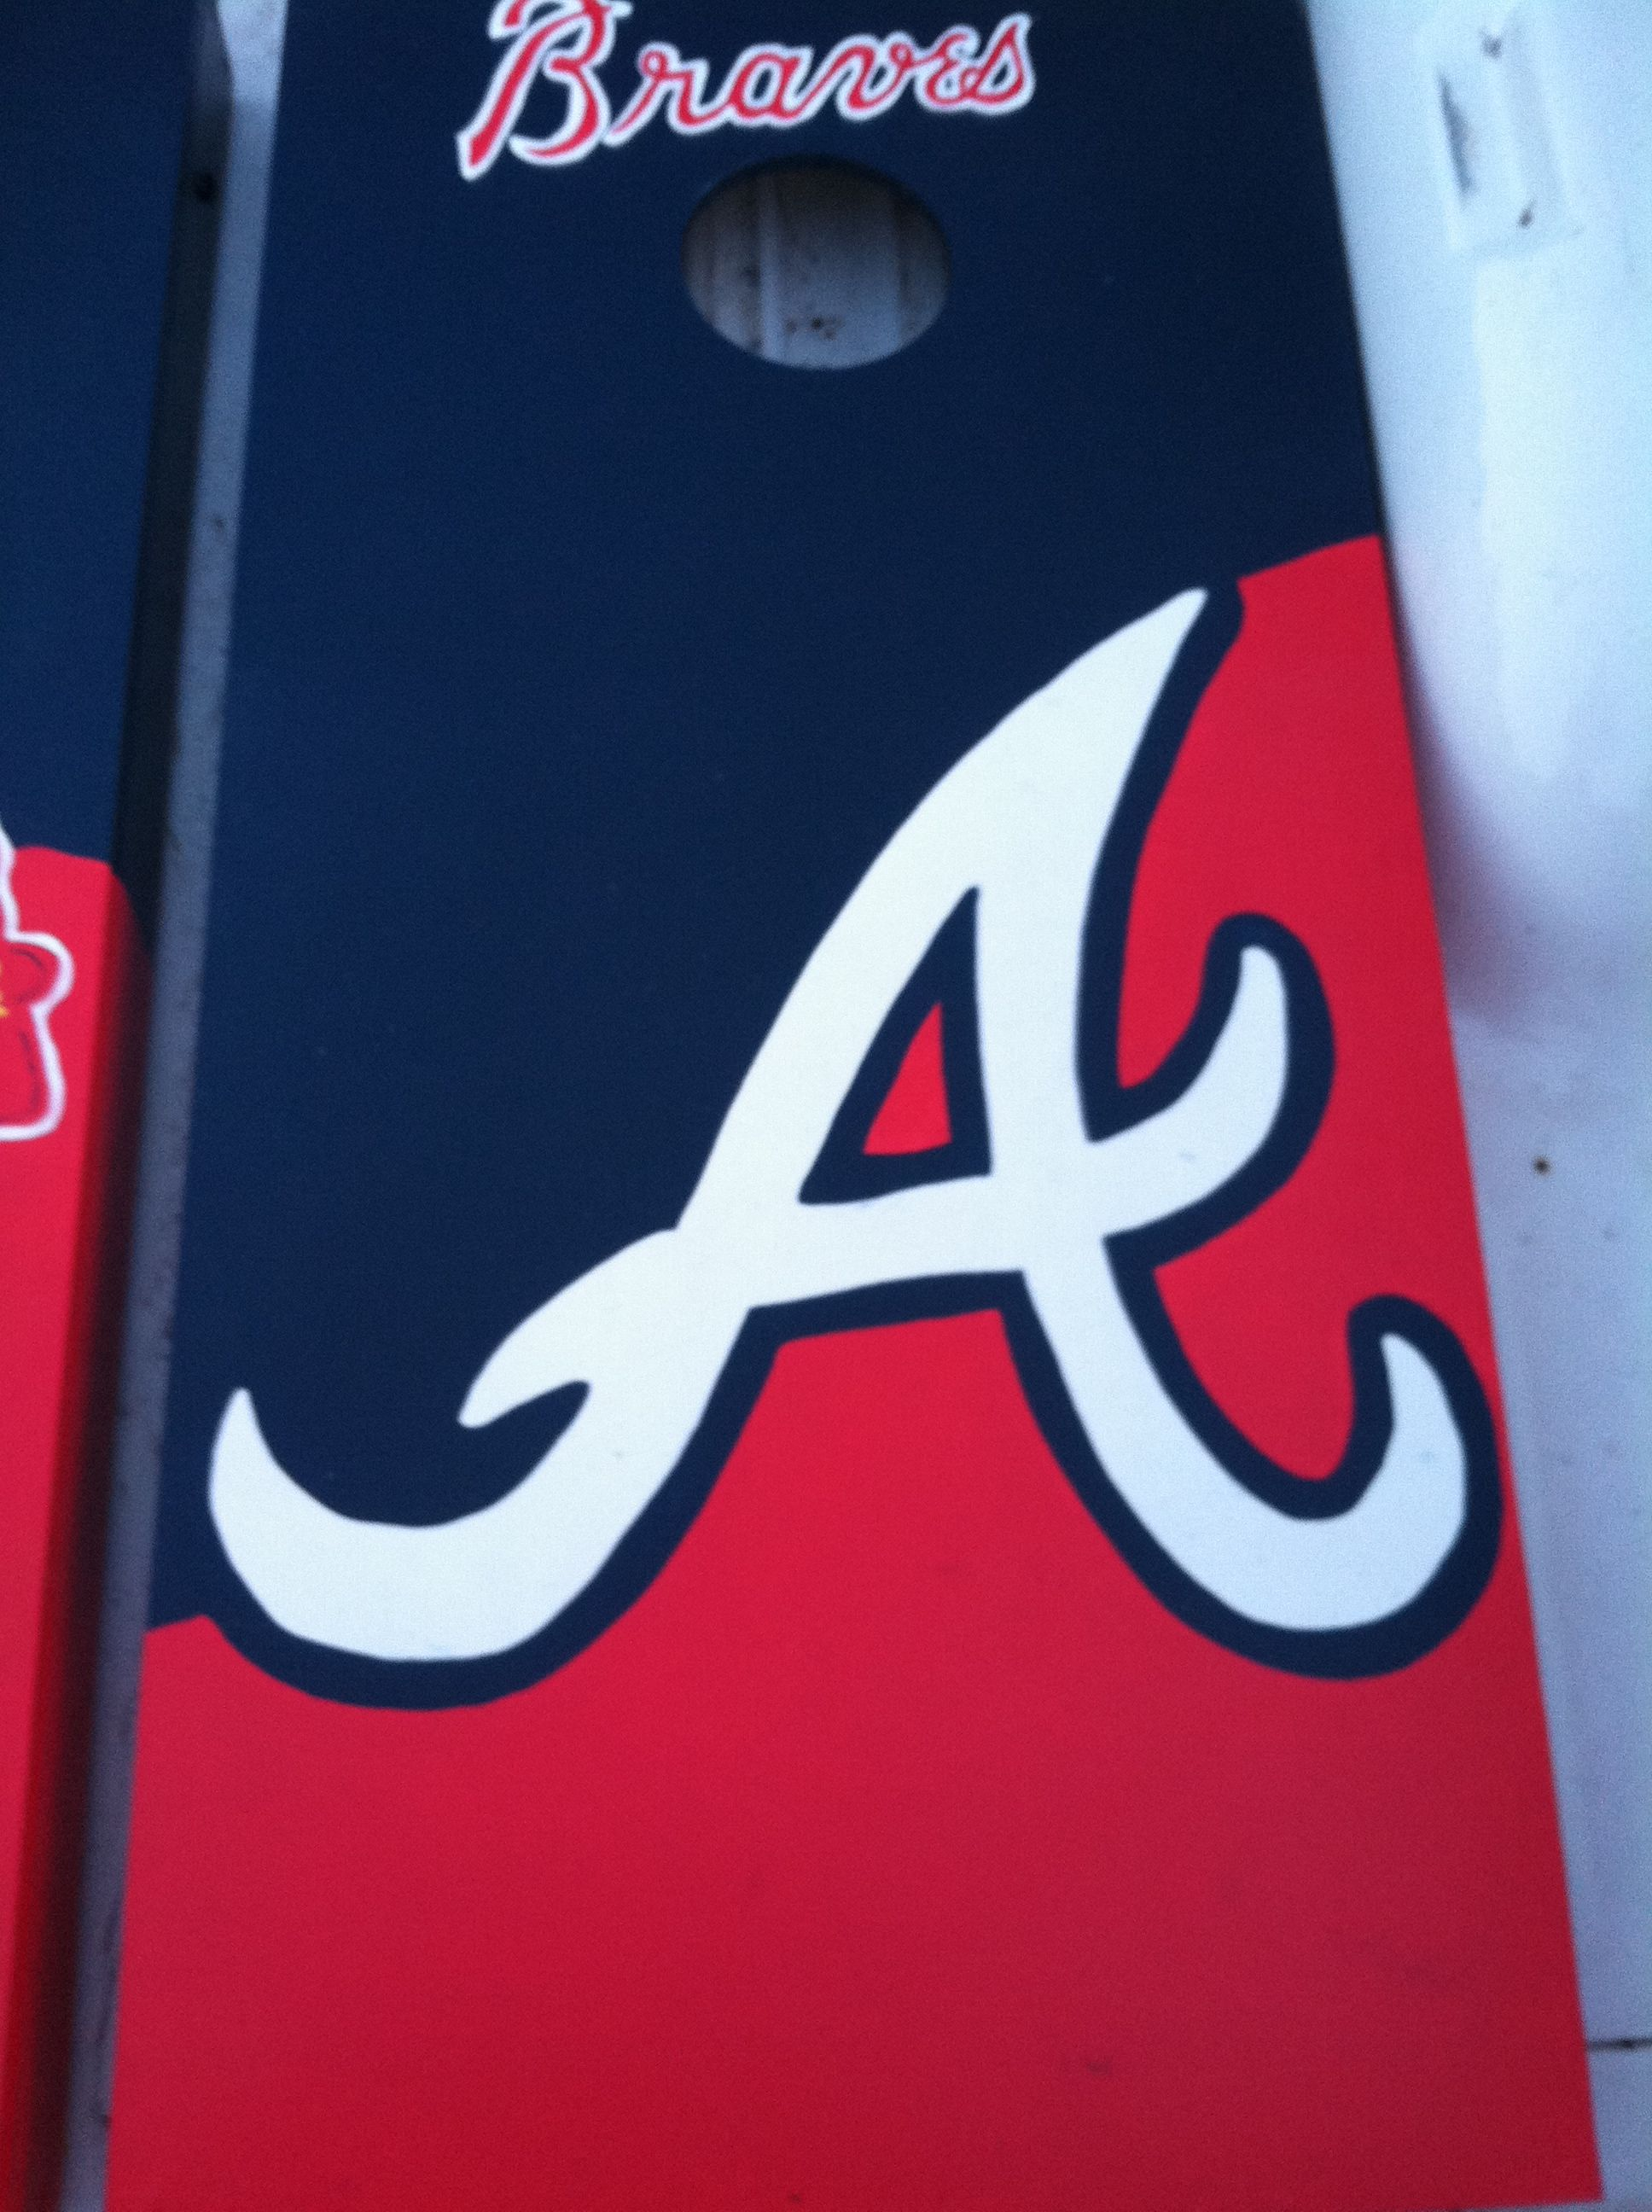 Pin By Amber Willoughby On Rainy Day Project Braves Cornhole Boards Braves Cornhole Designs